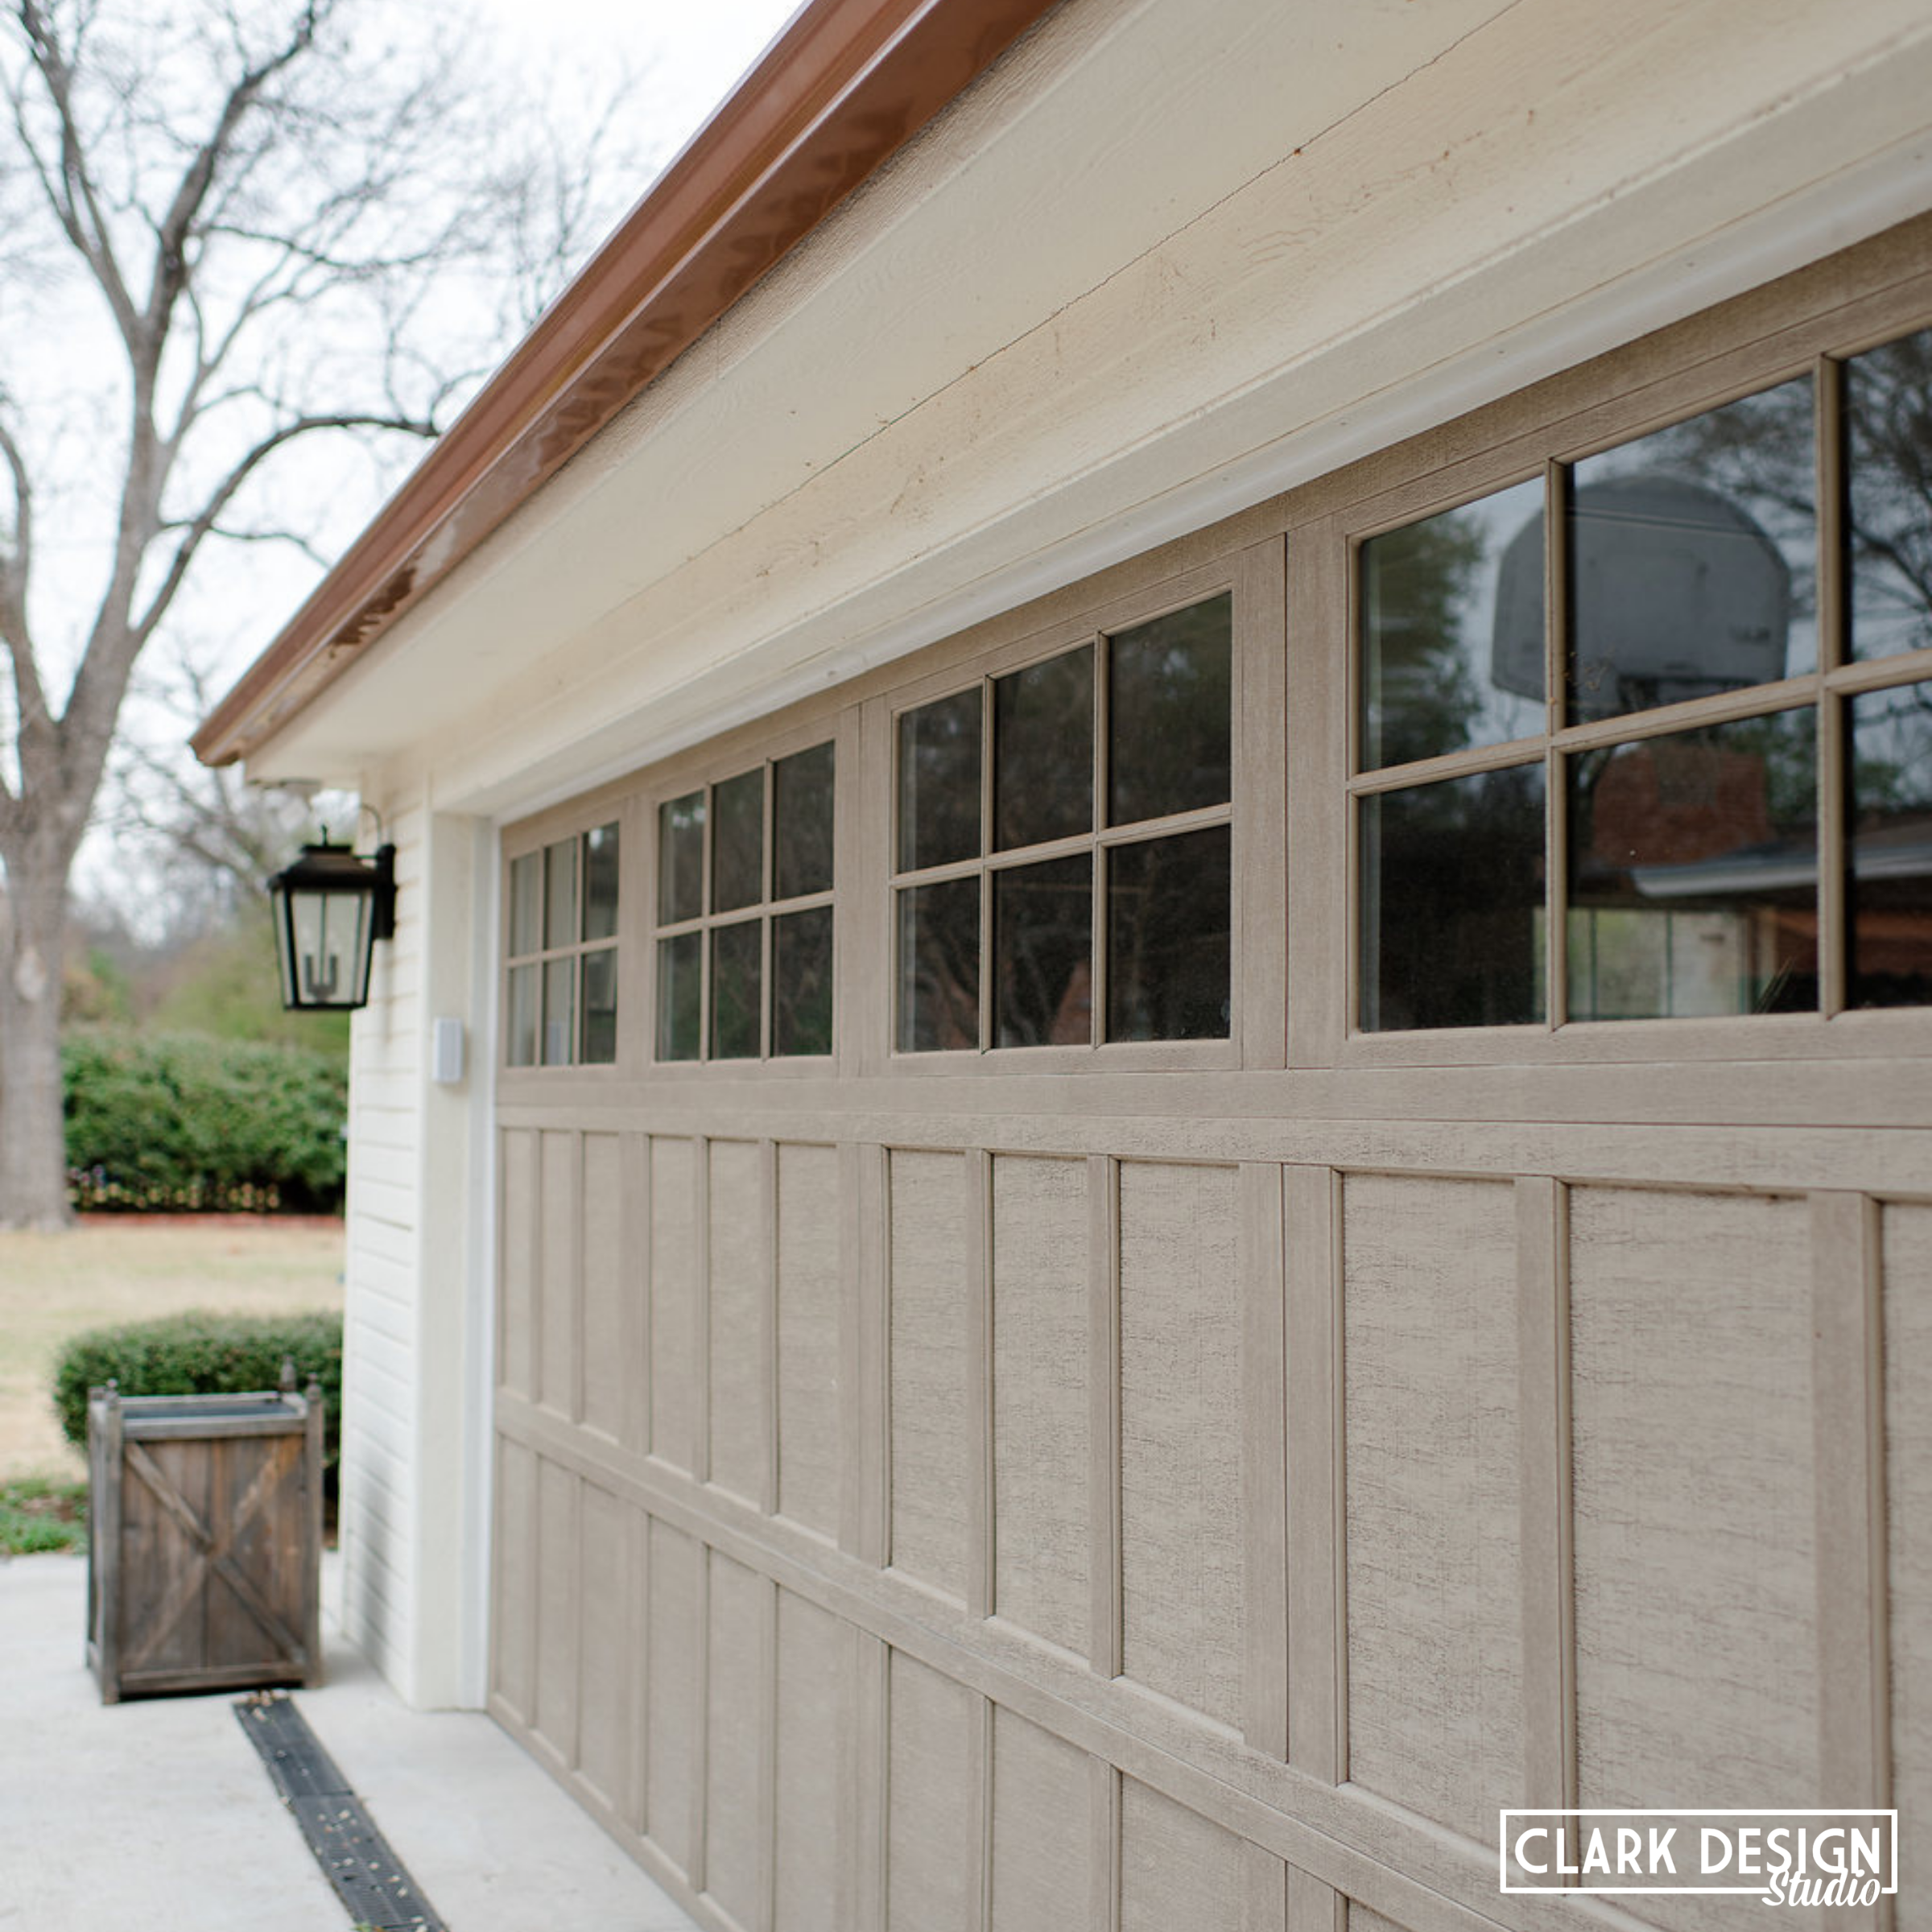 With This Crazy Spring Weather Wouldn T A Garage Be Nice We Can Do That For You Clarkdesigna Exterior House Colors Exterior Design House Exterior